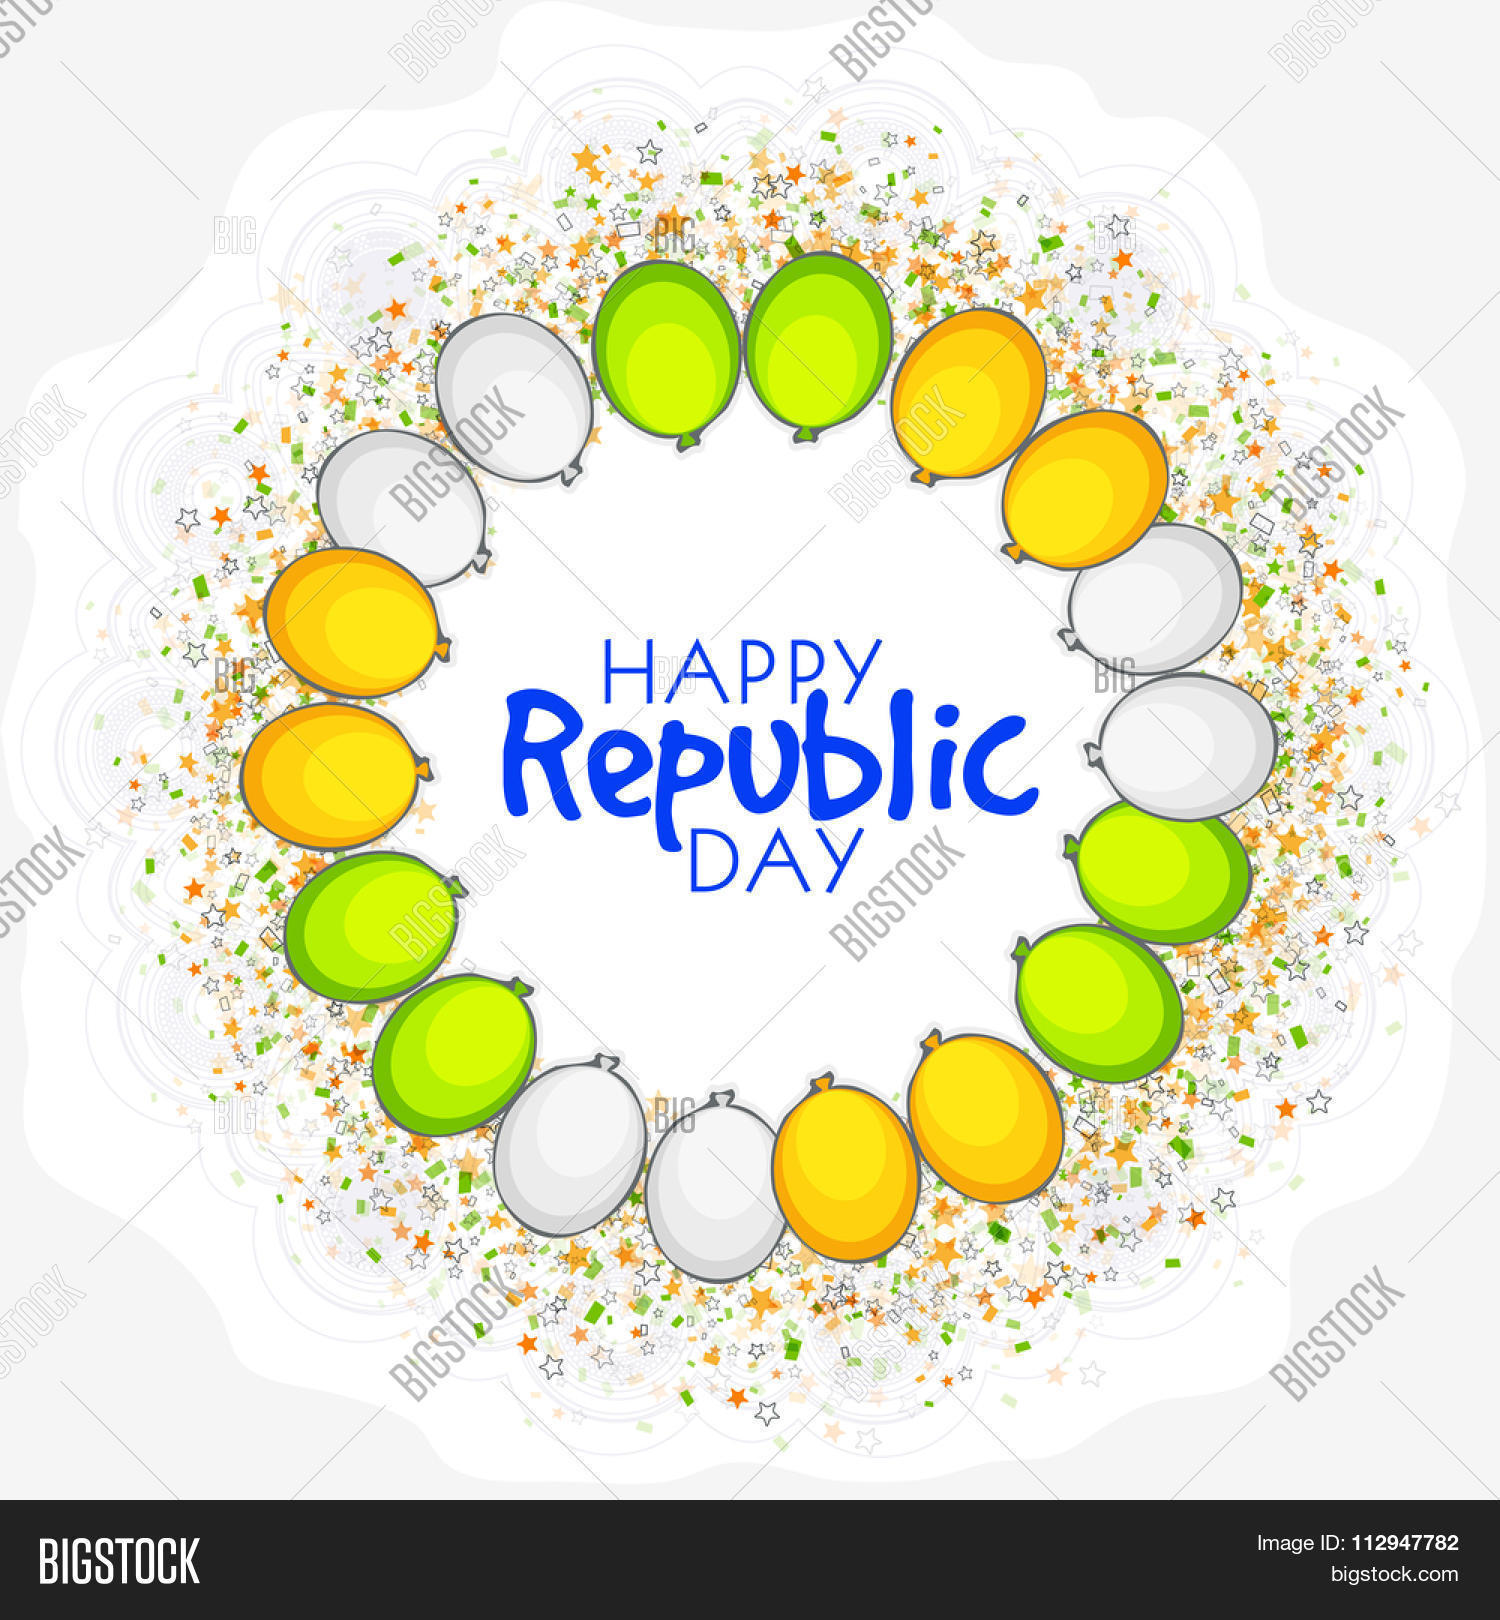 Elegant greeting card vector photo free trial bigstock elegant greeting card design decorated with tricolour balloons for happy indian republic day celebration m4hsunfo